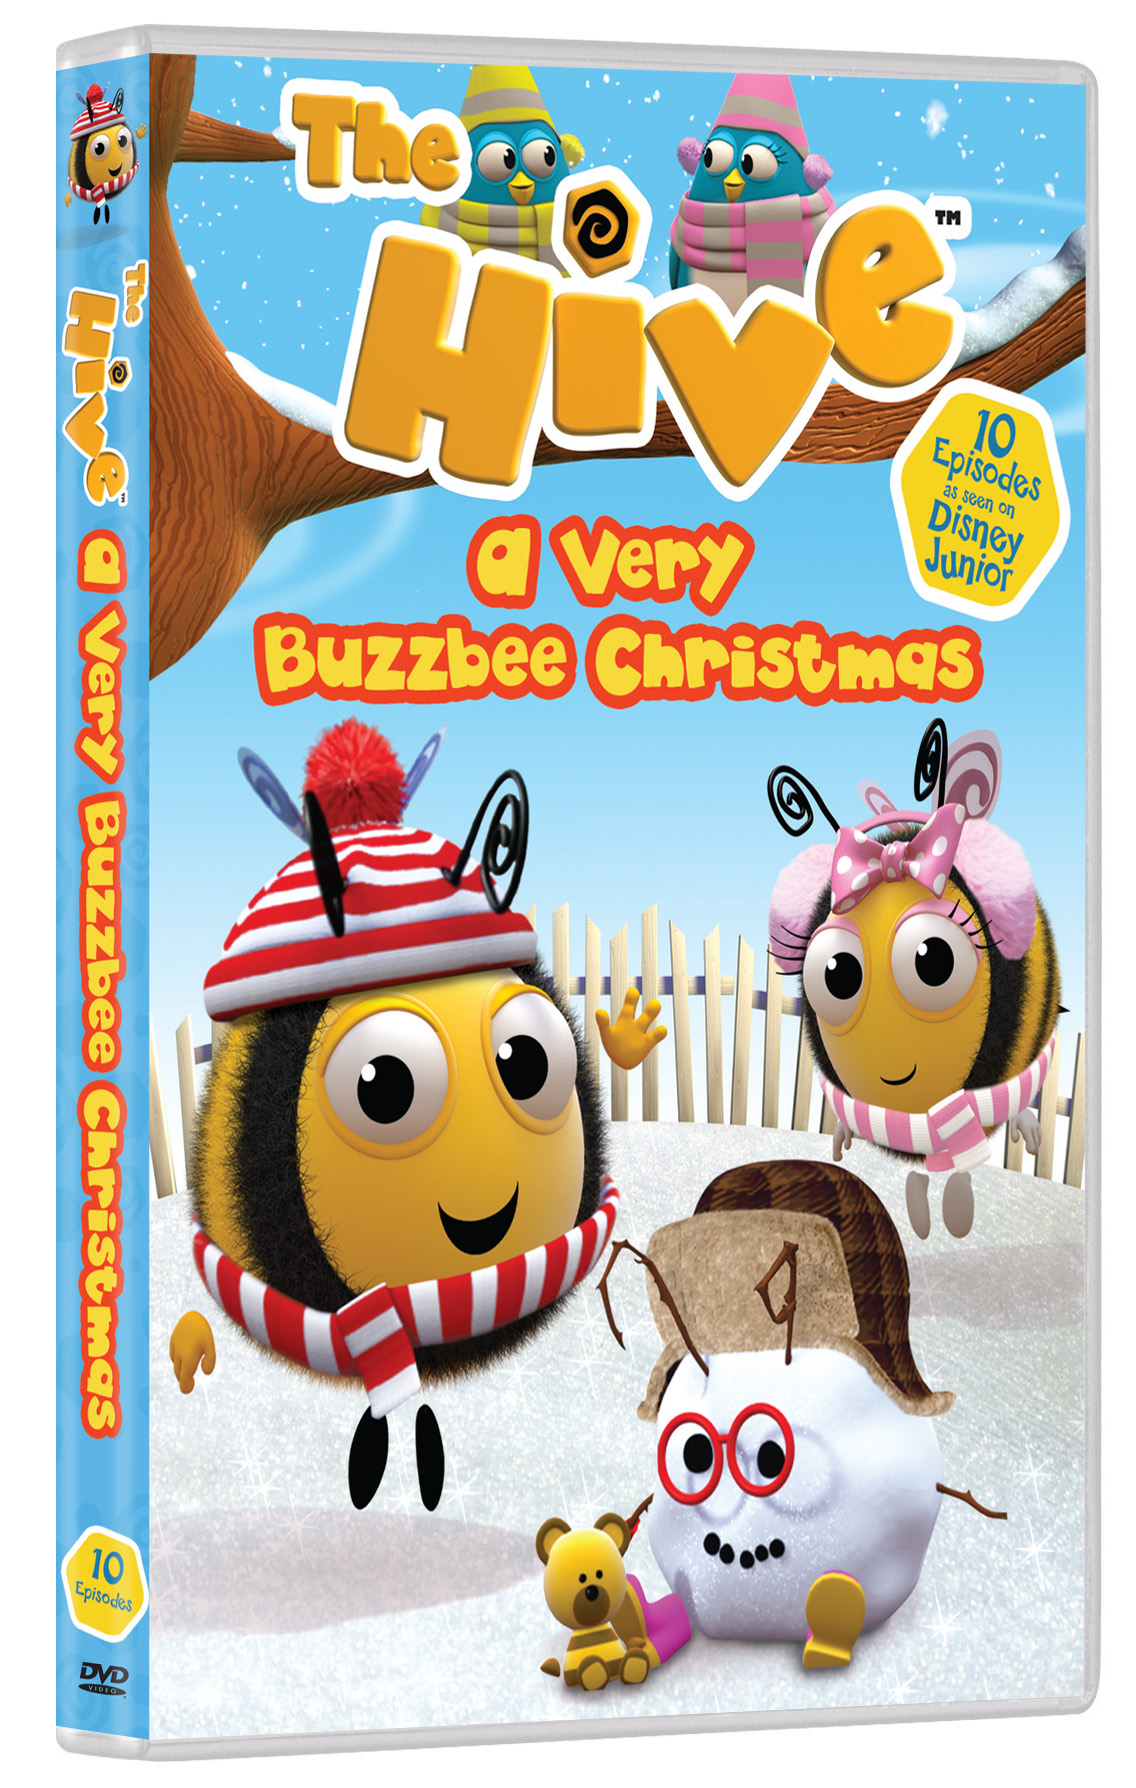 The Really Big Pix Collection Of Famous Mustaches: The Hive: A Very Buzzbee Christmas